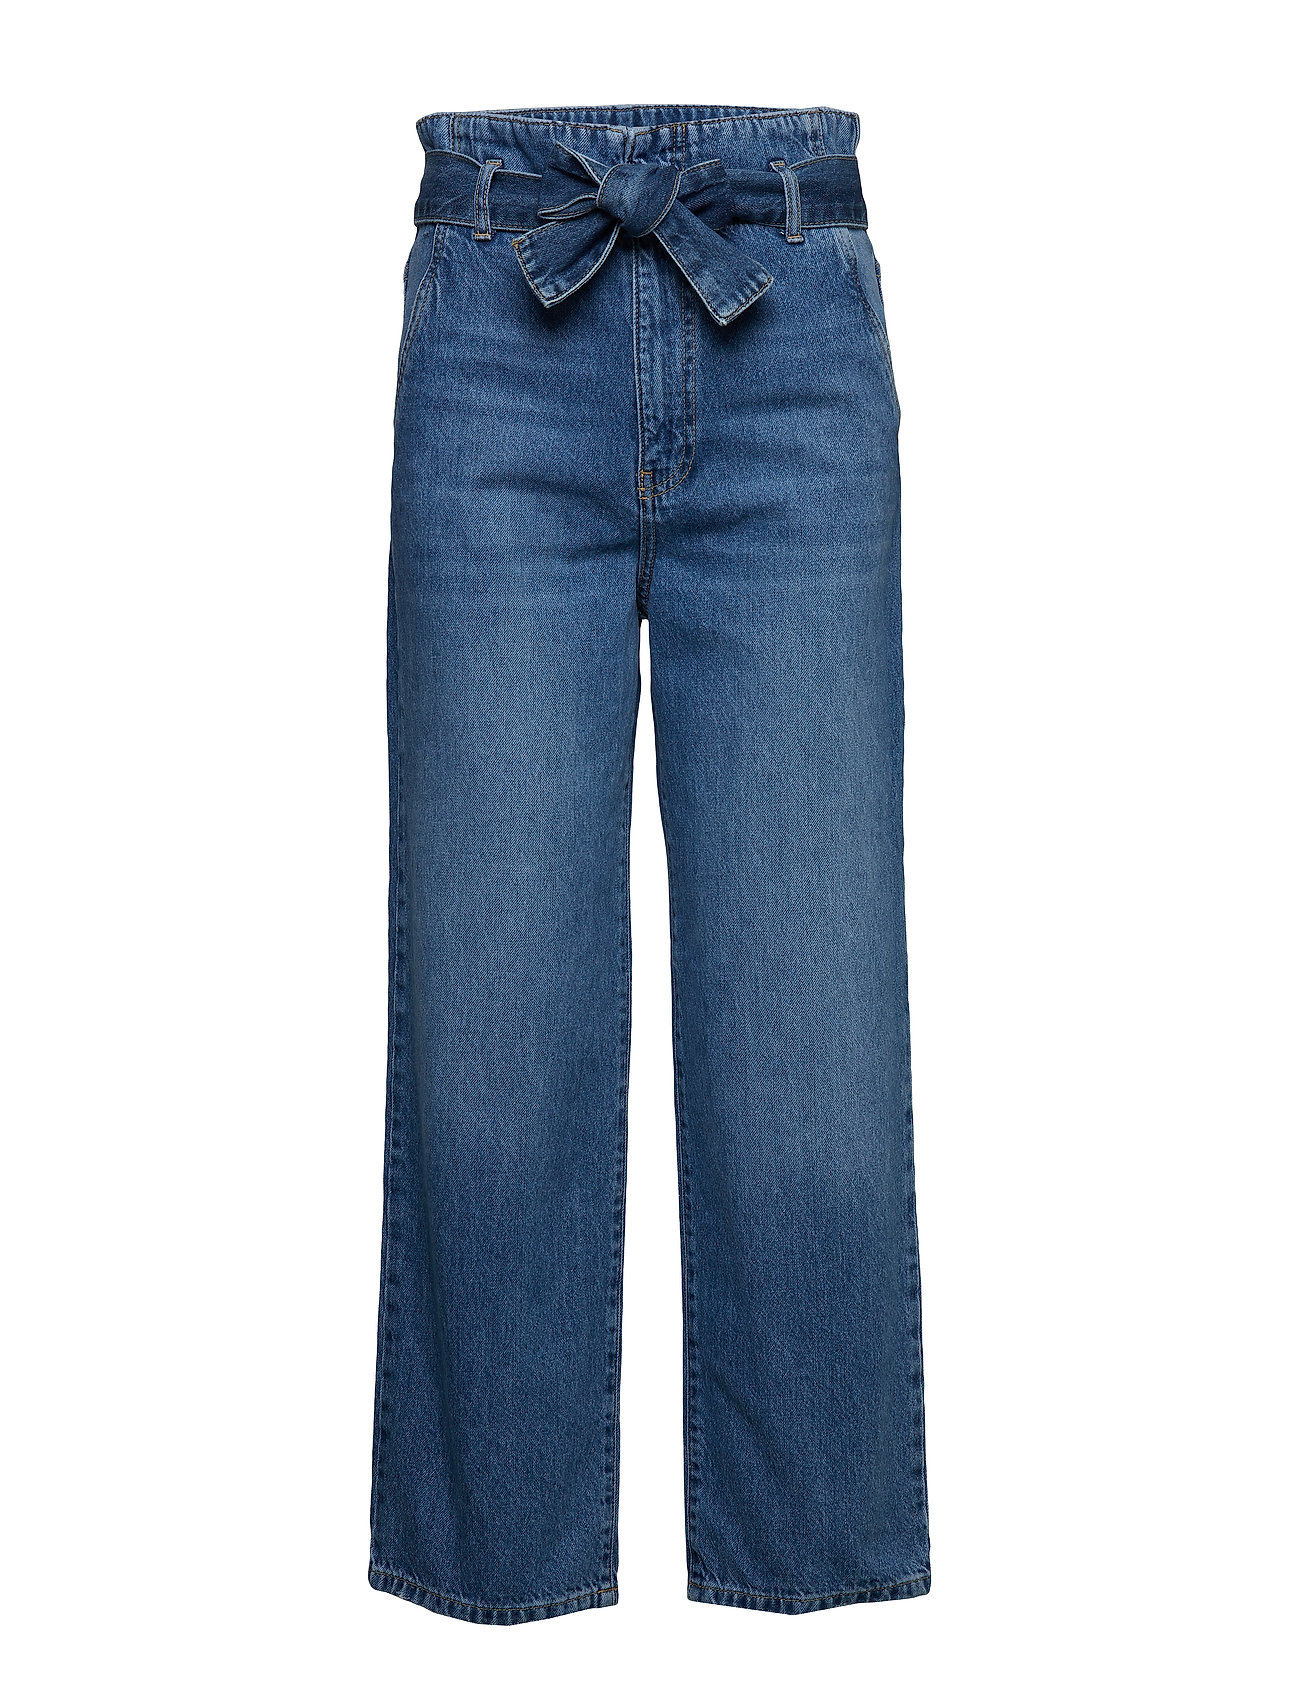 Gina Tricot Belted paperbag jeans